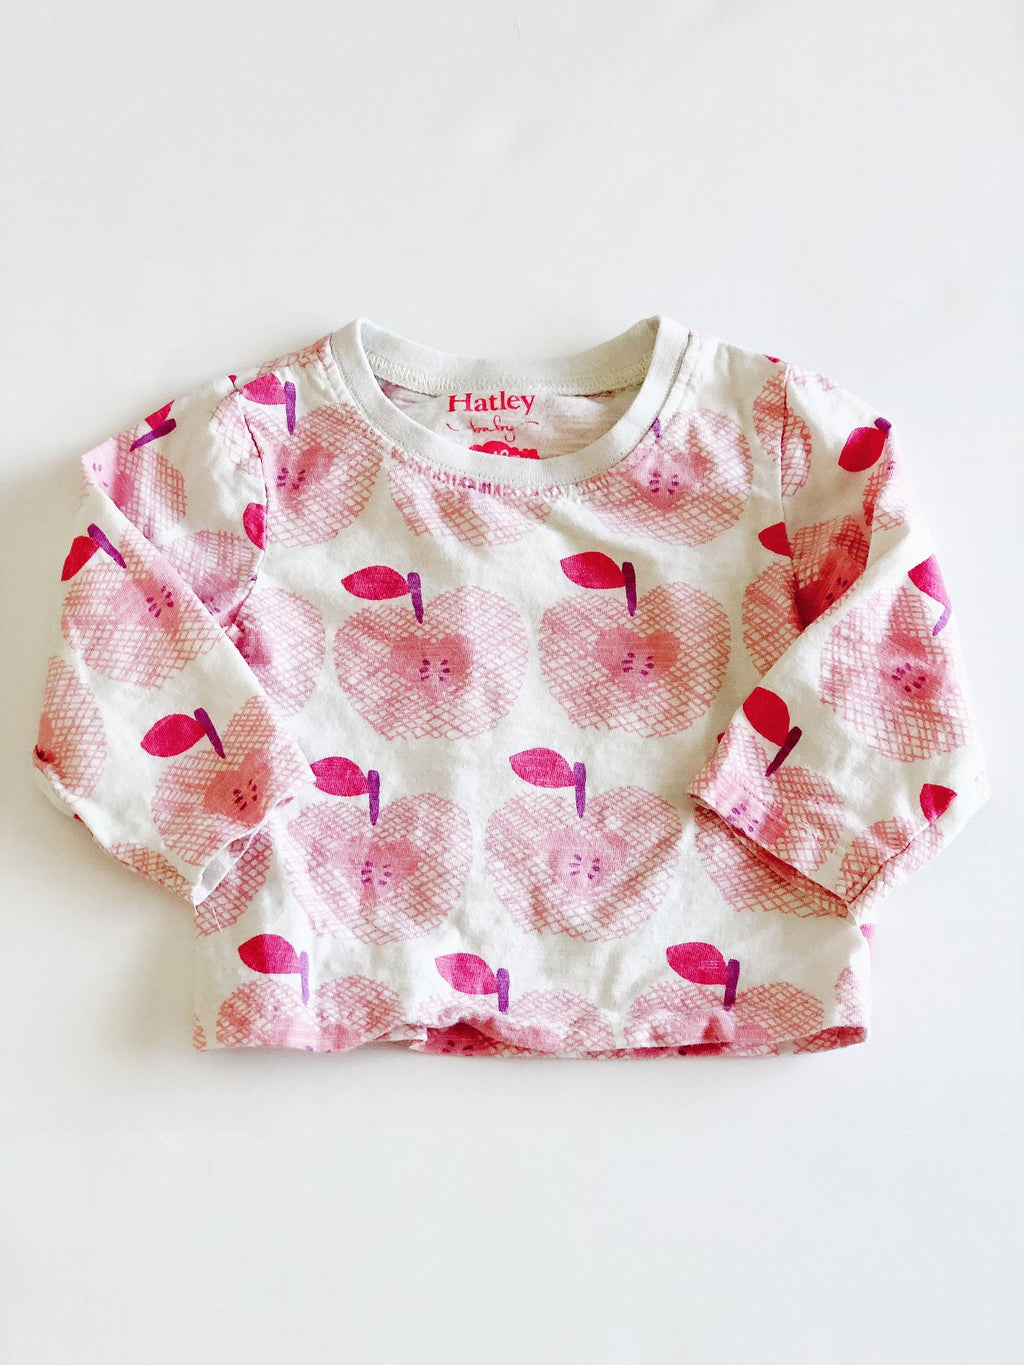 Hatley top 9-12m-Fresh Kids Inc.